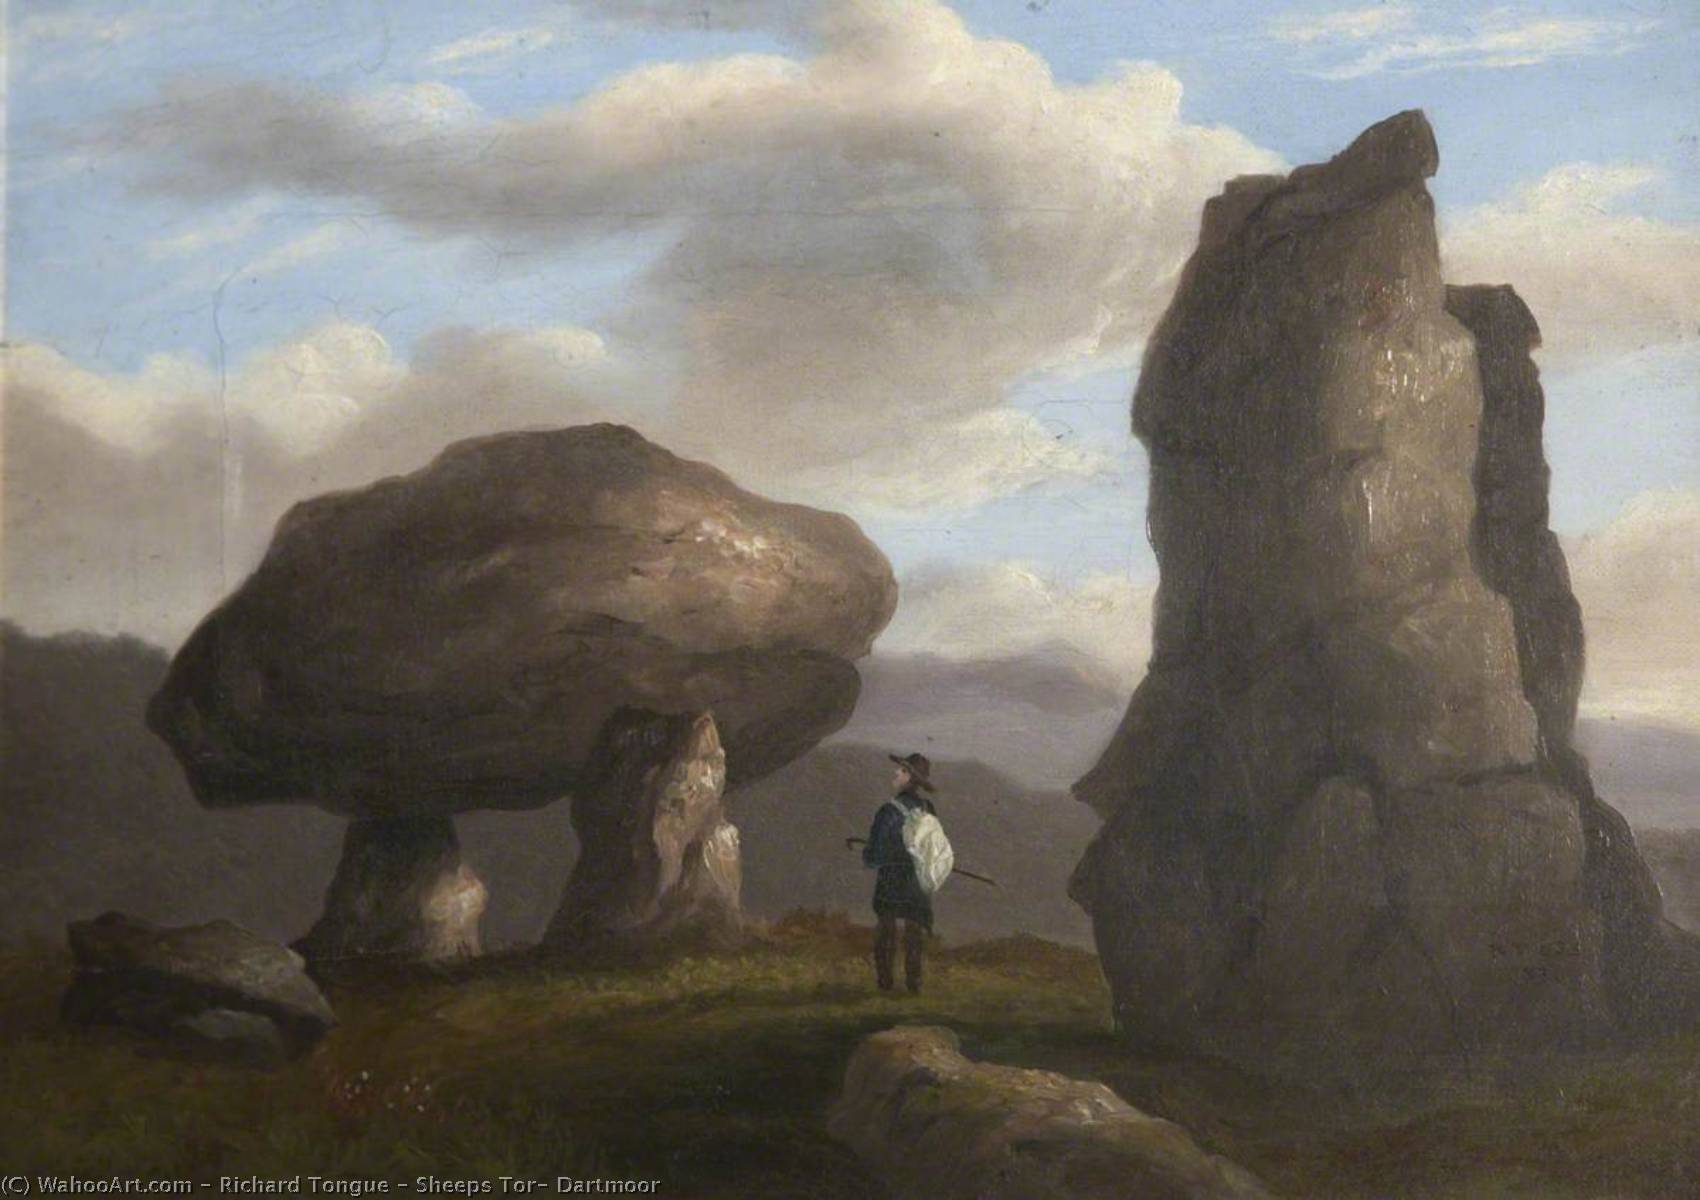 Des moutons Tor , Dartmoor, 1830 de Richard Tongue | WahooArt.com